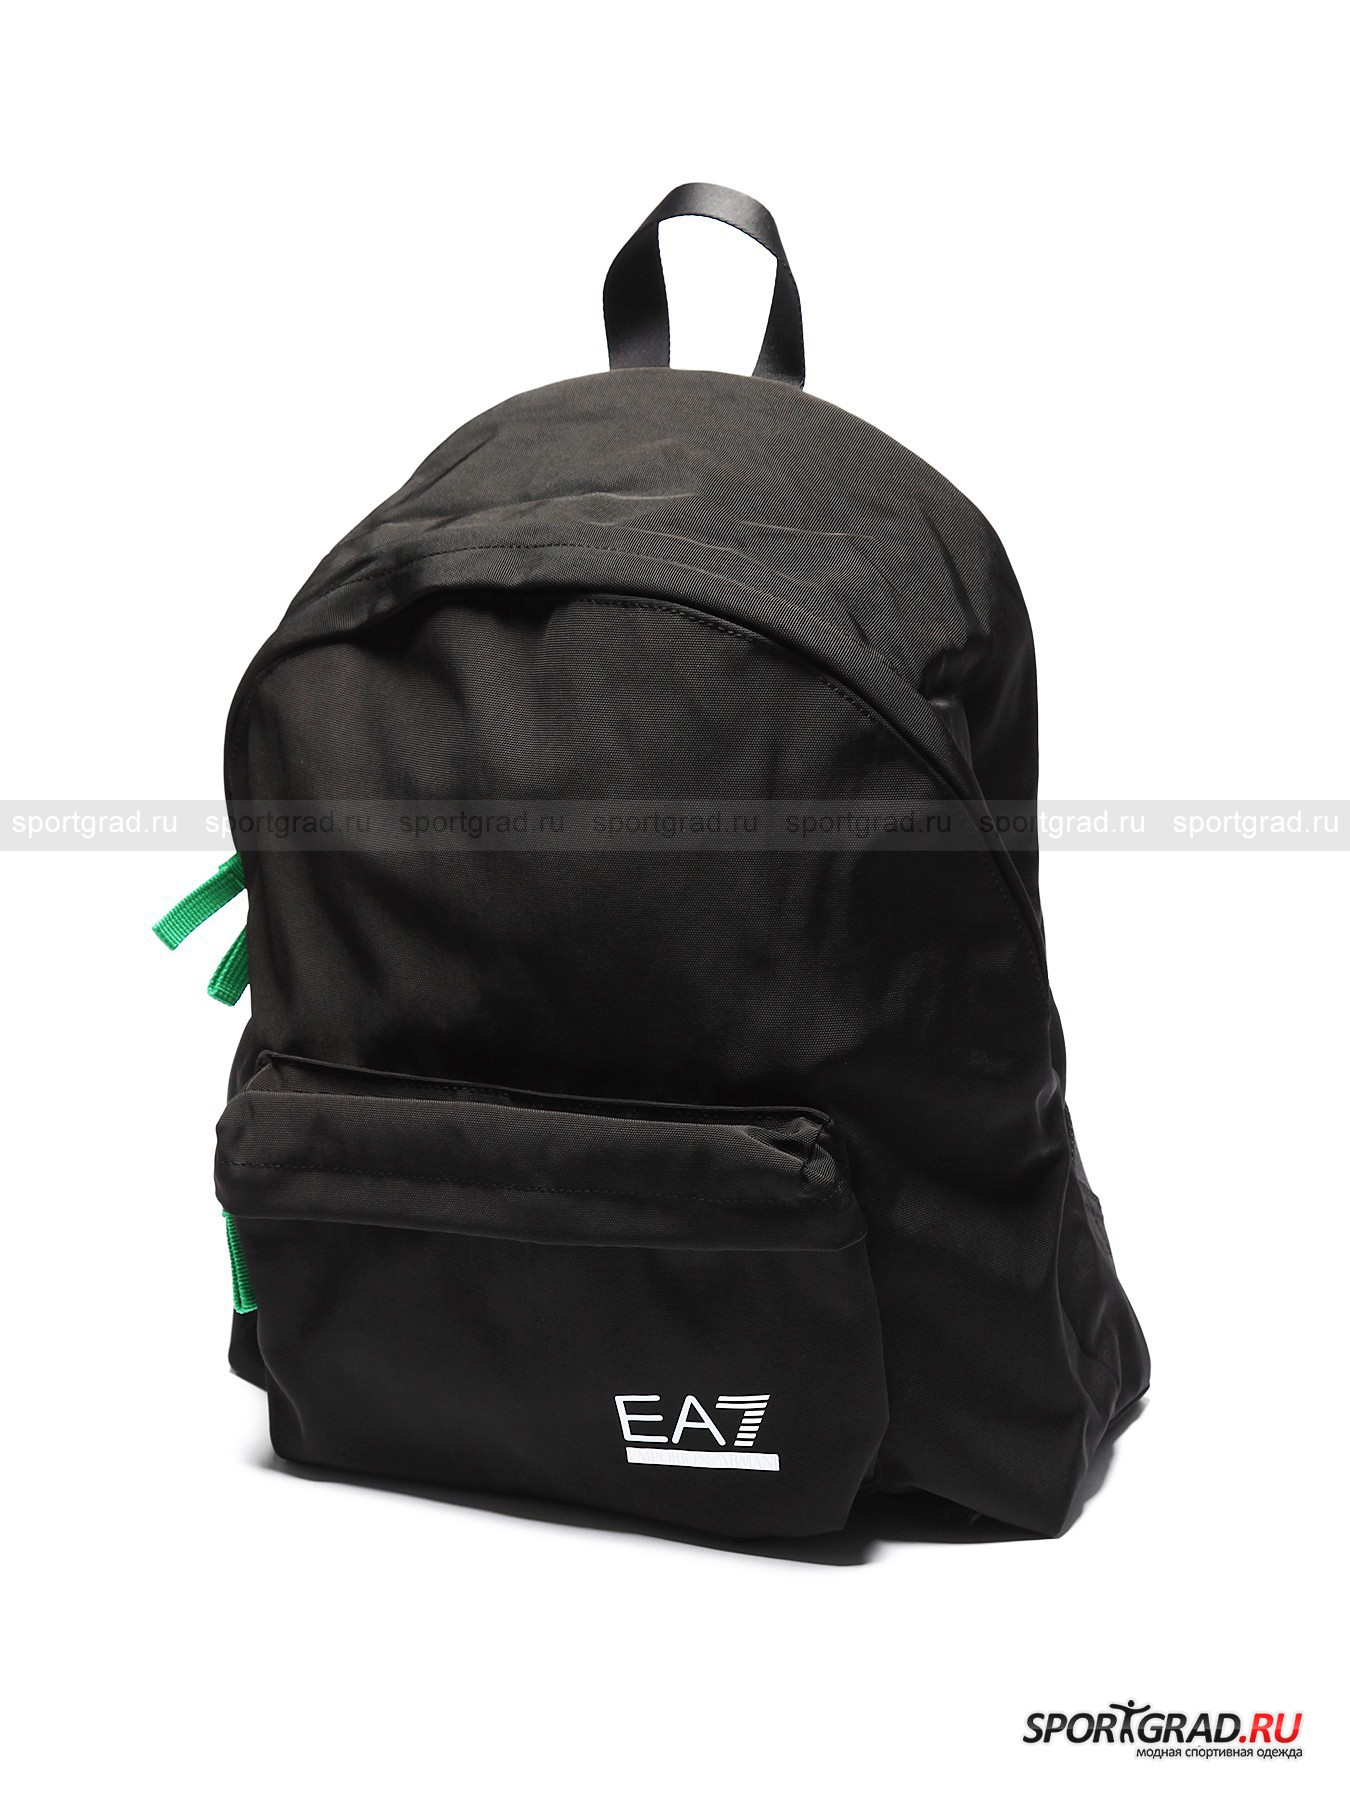 Рюкзак Evolution Backpack EA7 Emporio Armani